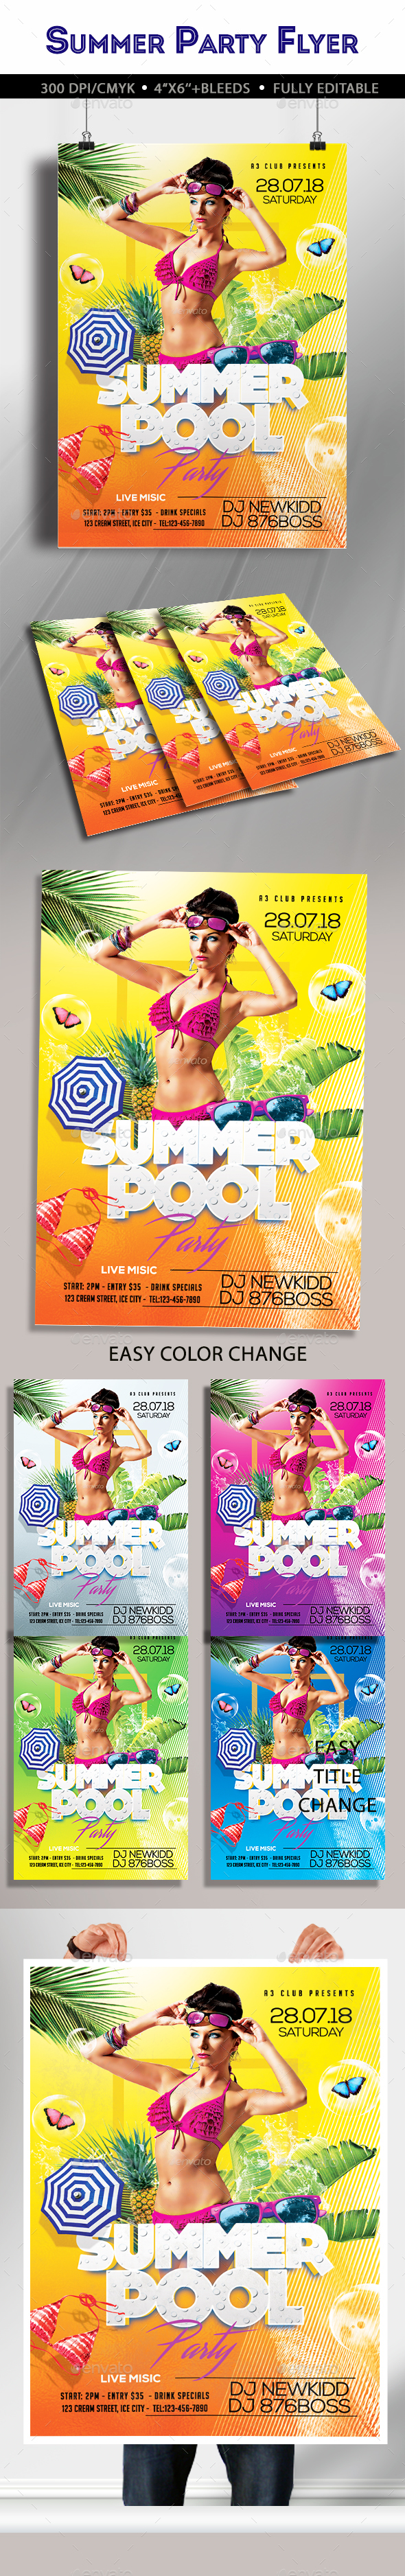 Summer Pool Party Flyer - Clubs & Parties Events